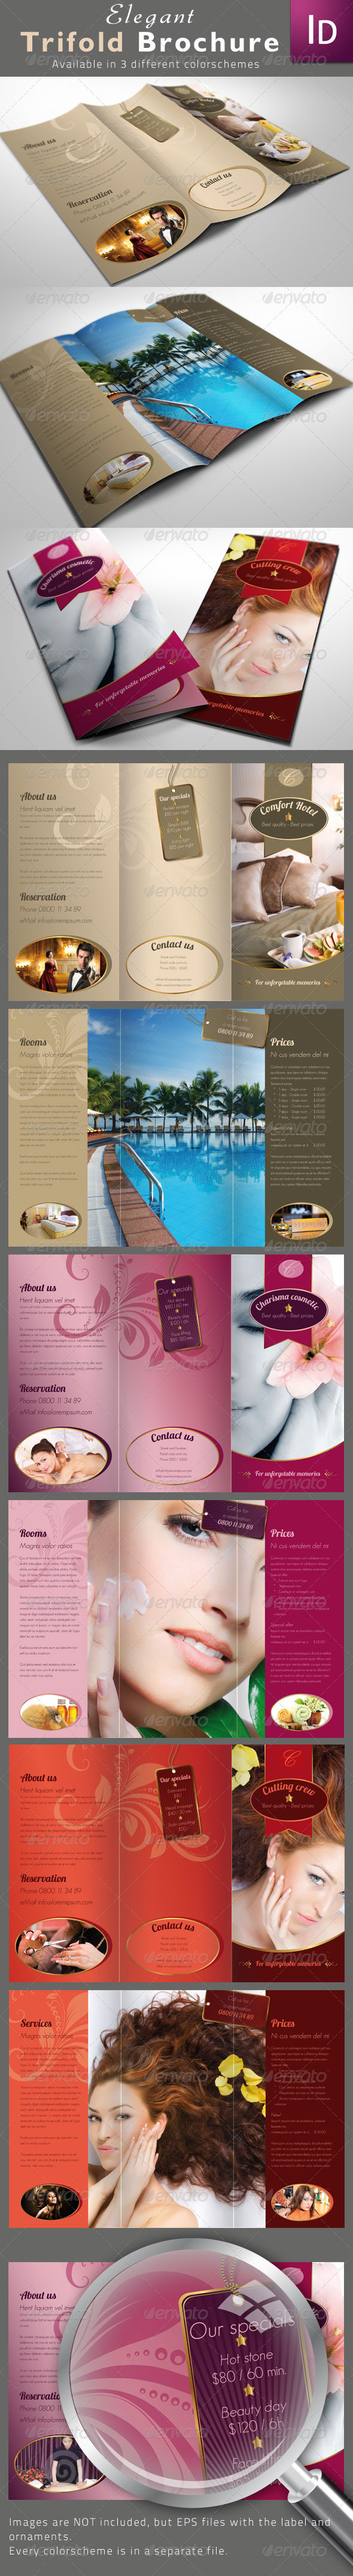 Elegant Trifold Brochures - Corporate Brochures